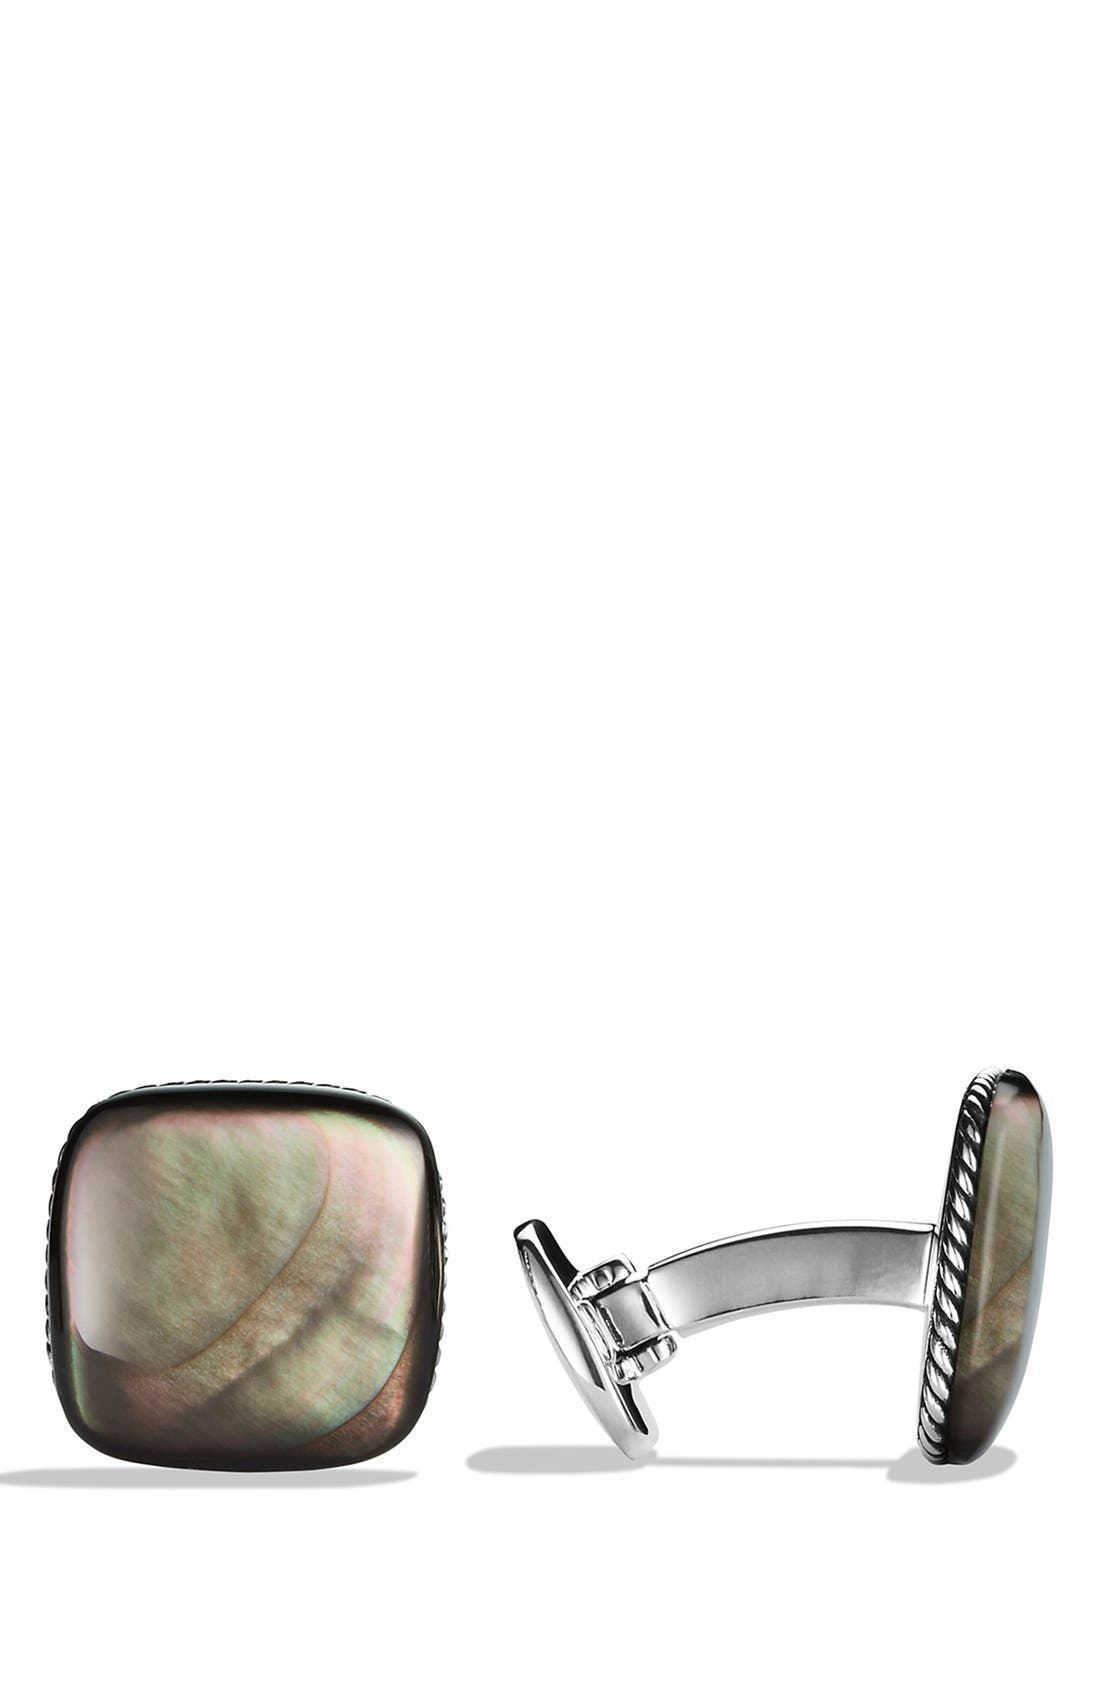 'Streamline' Cuff Links with Black Mother-of-Pearl,                             Main thumbnail 1, color,                             Black Mother Of Pearl